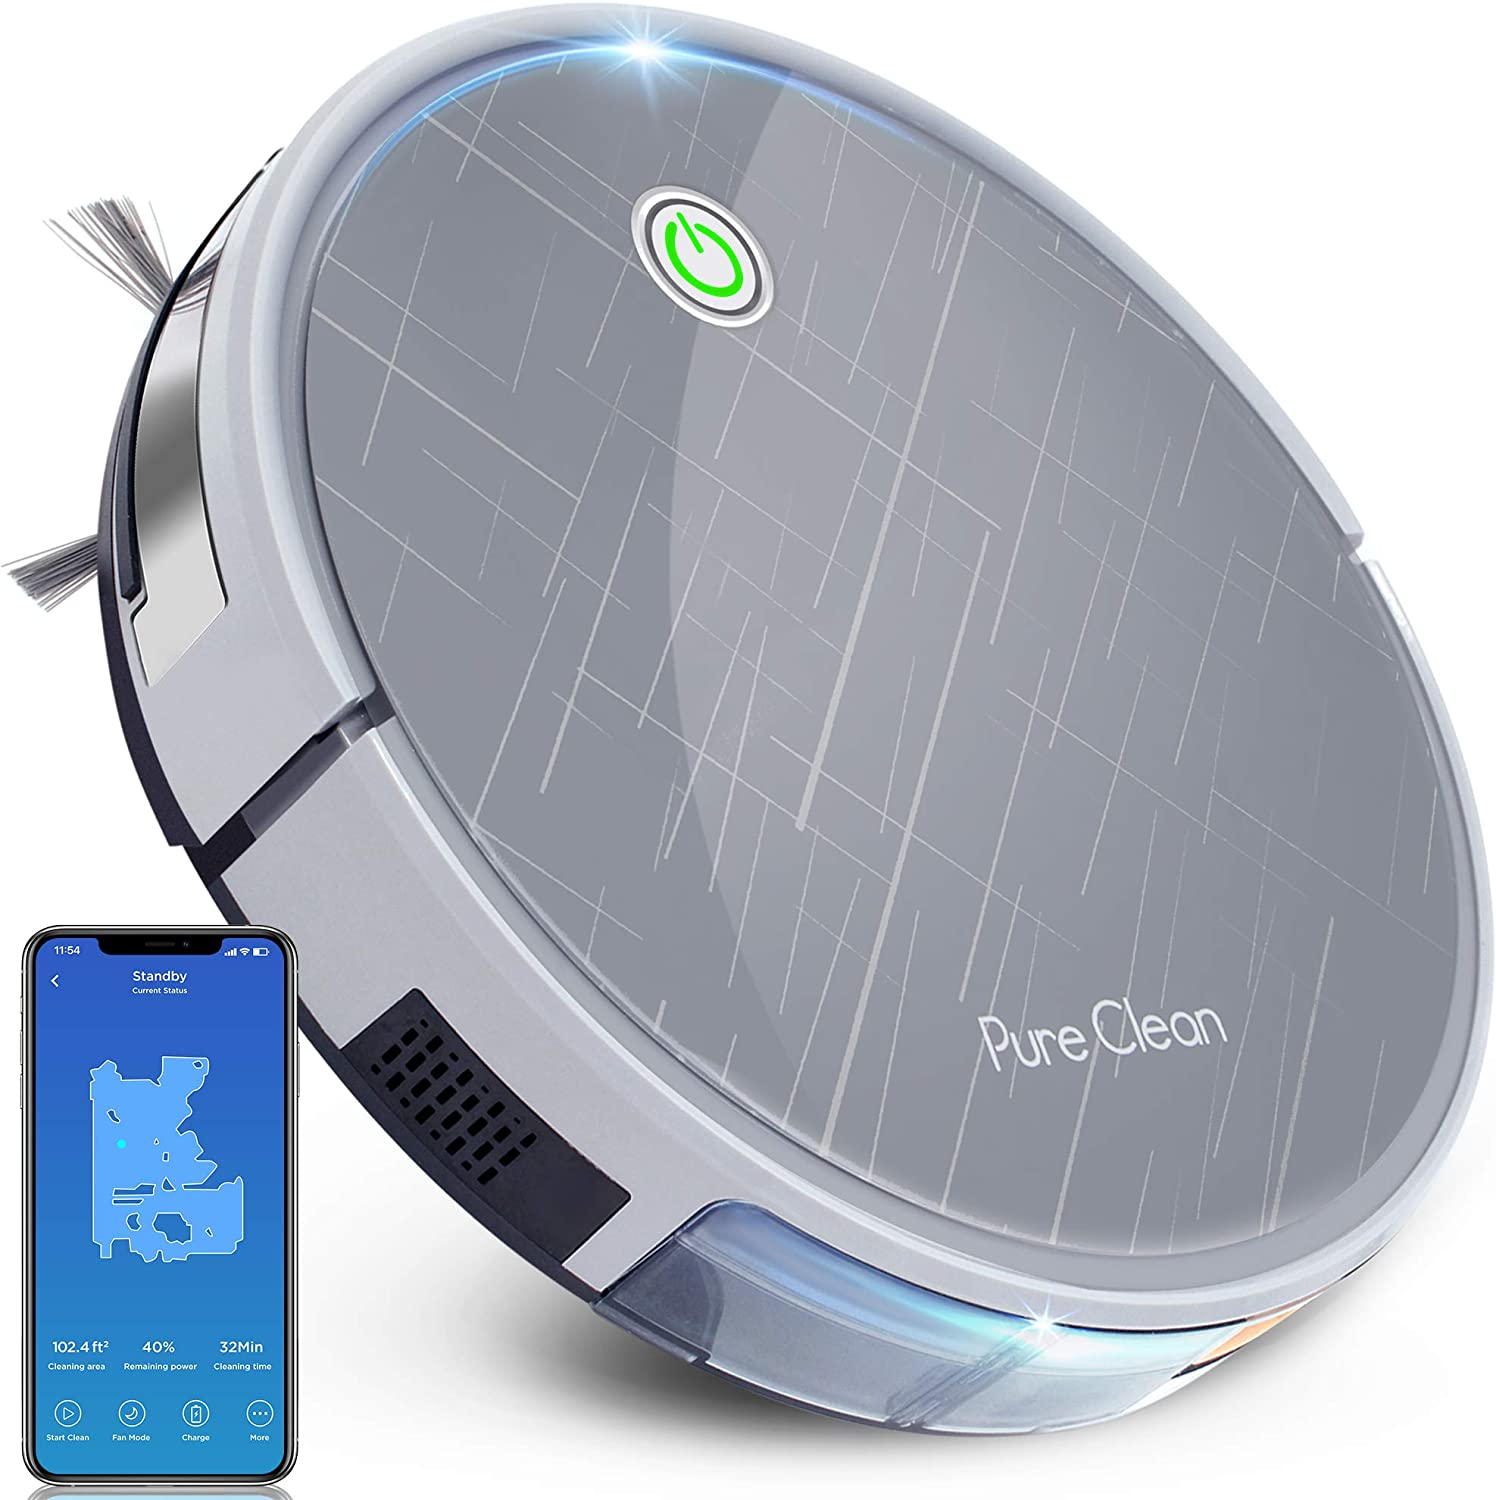 PureClean Robotic Vacuum Cleaner - It is very popular Mobile Suction Direct store WiFi 2700Pa